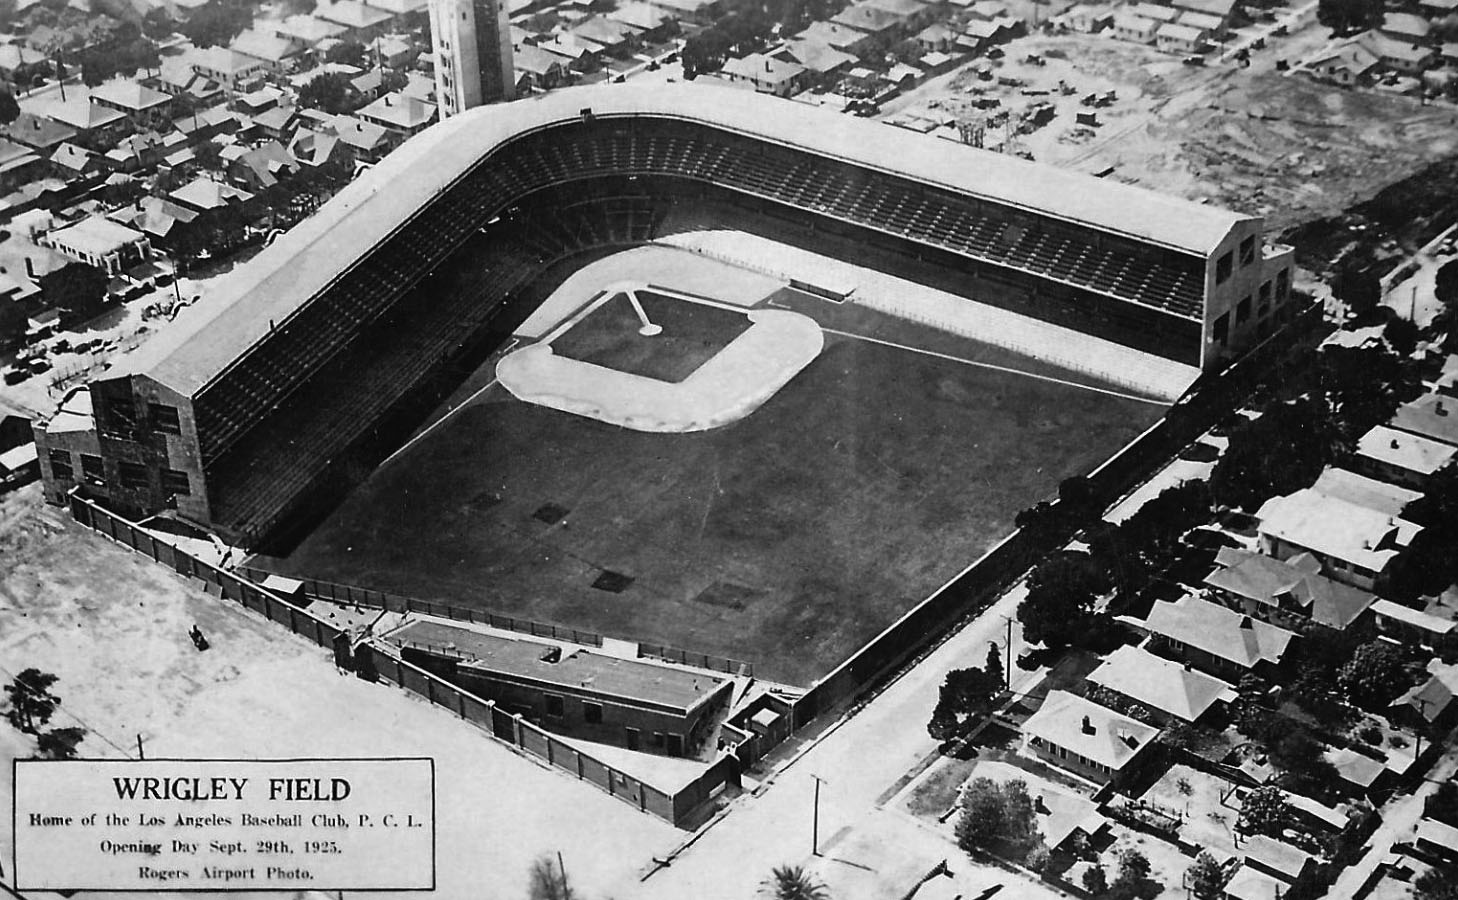 4c032b0b92b (1925)^^* - View of Wrigley Field on opening day, September 29, 1925, as  seen before the stadium was filled.